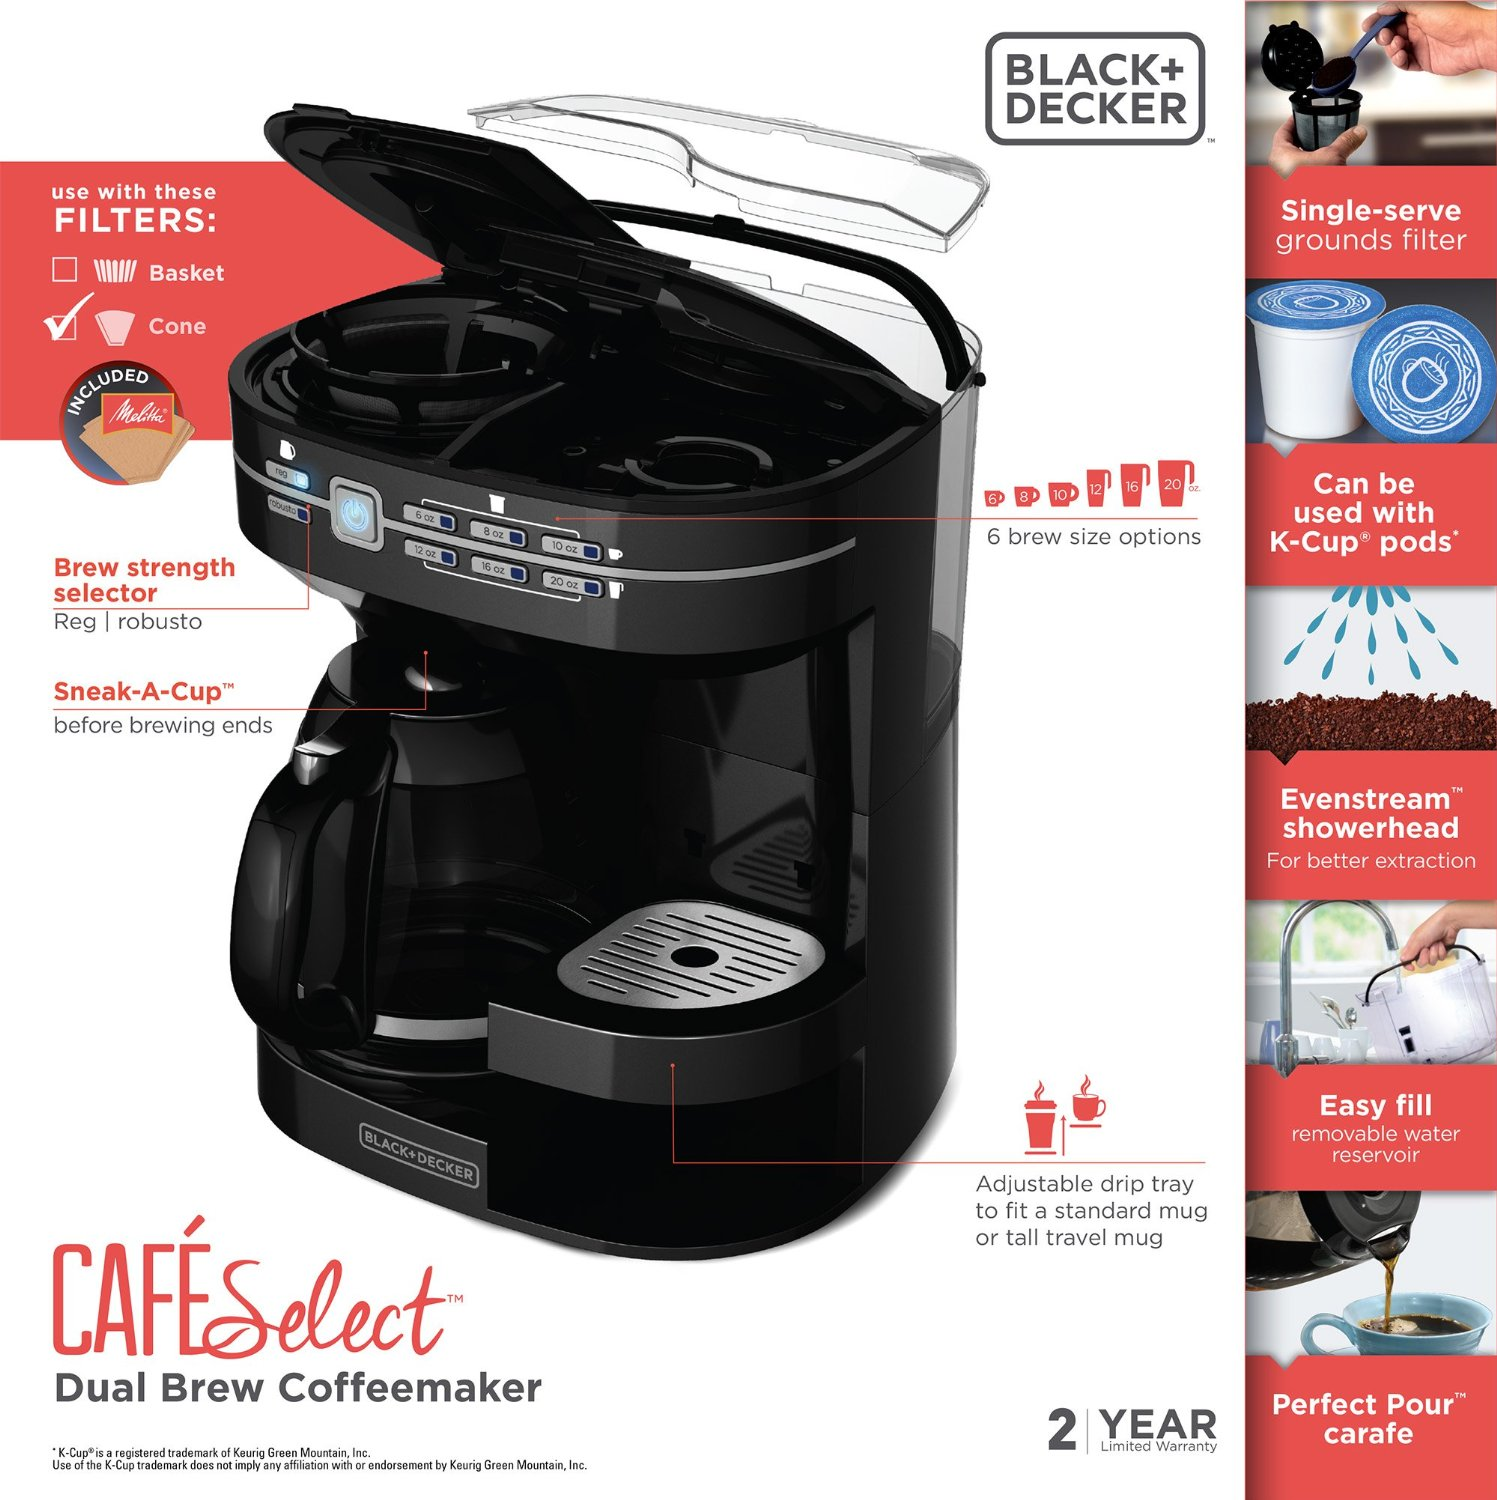 BLACK+DECKER CM6000B Cafe Select Dual Brew Coffeemaker